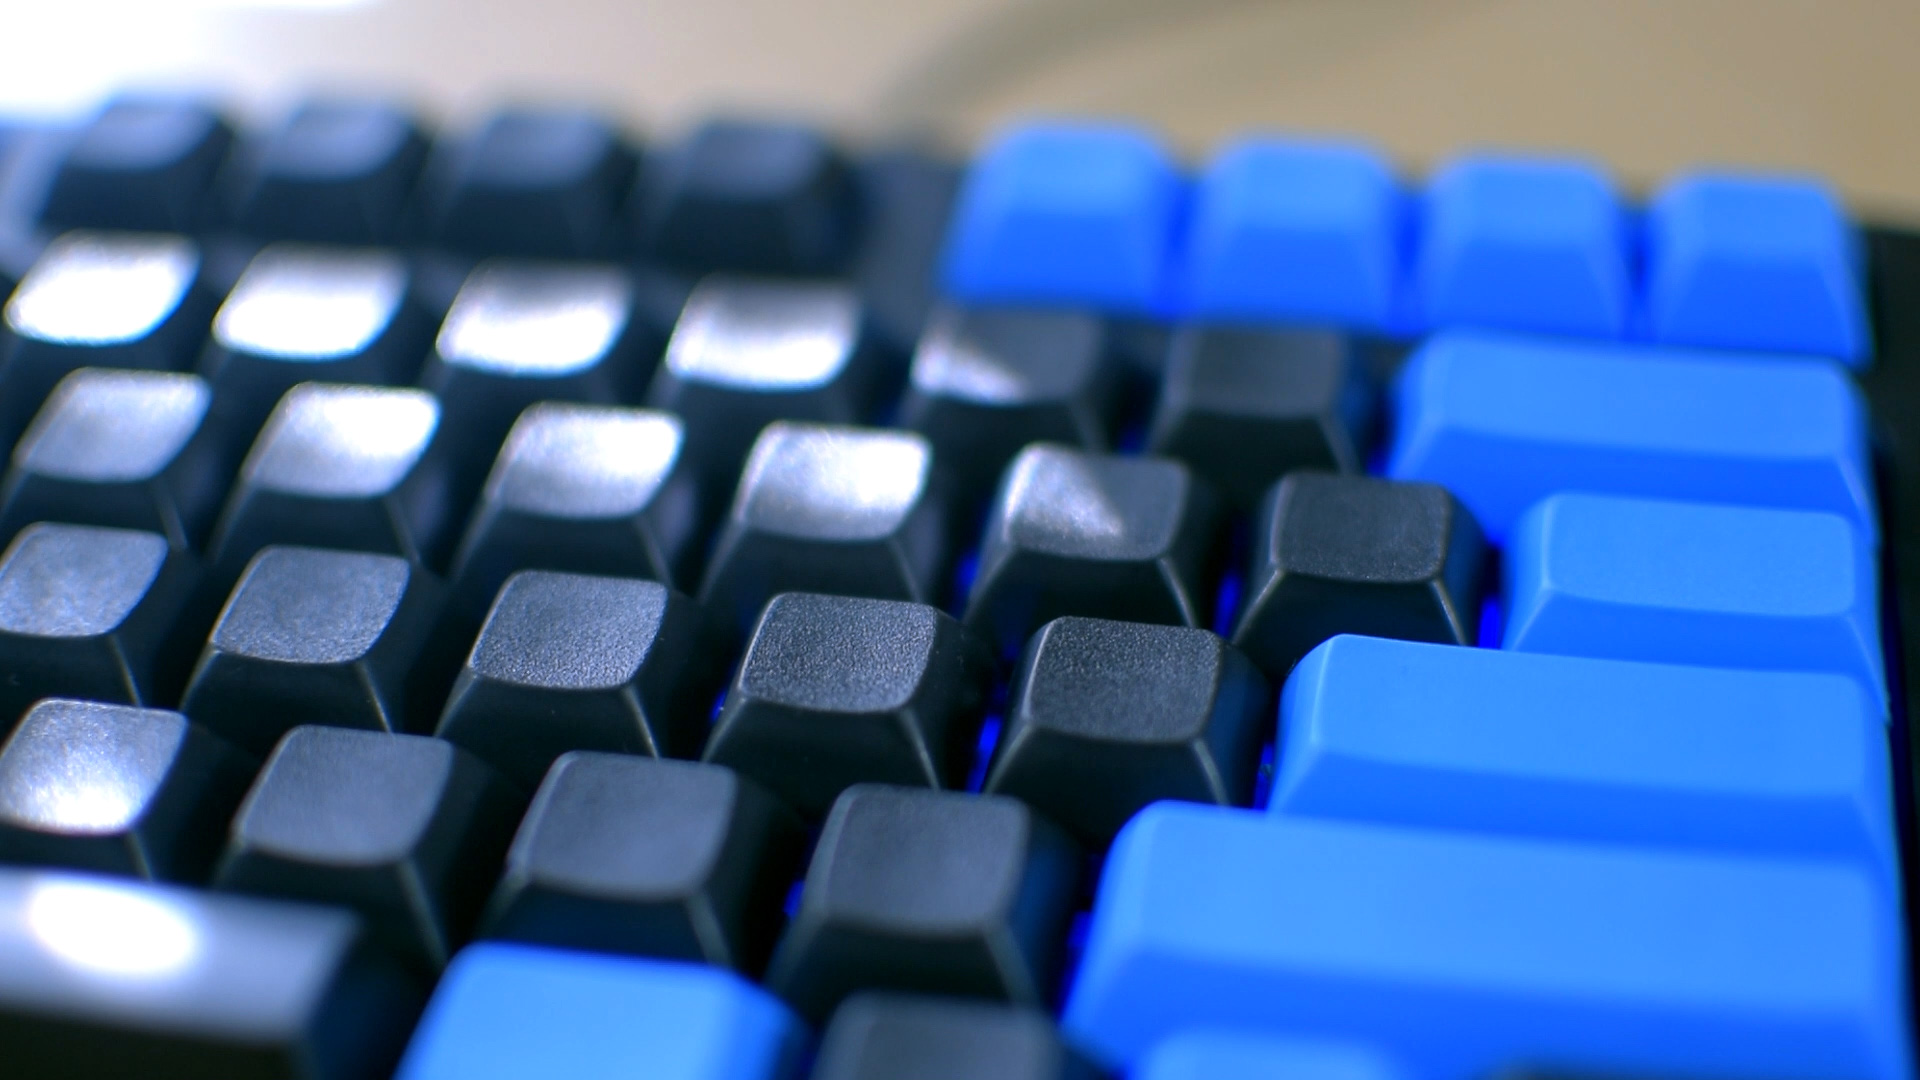 Customize Your Mechanical Keyboard (Keycap Replacement Guide